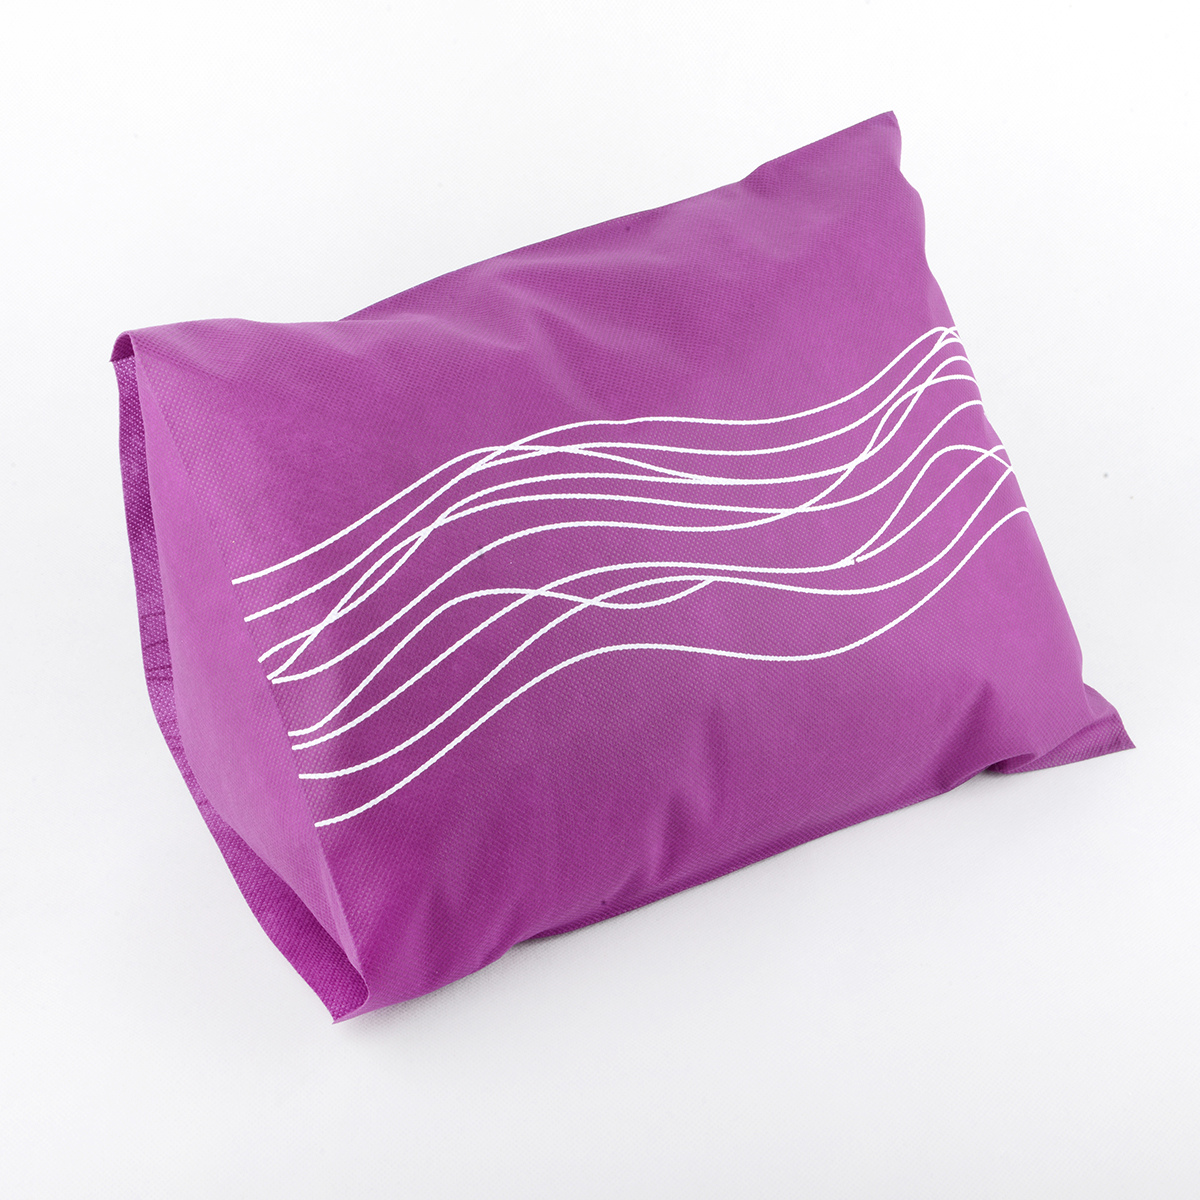 decorative pillowcases Airline